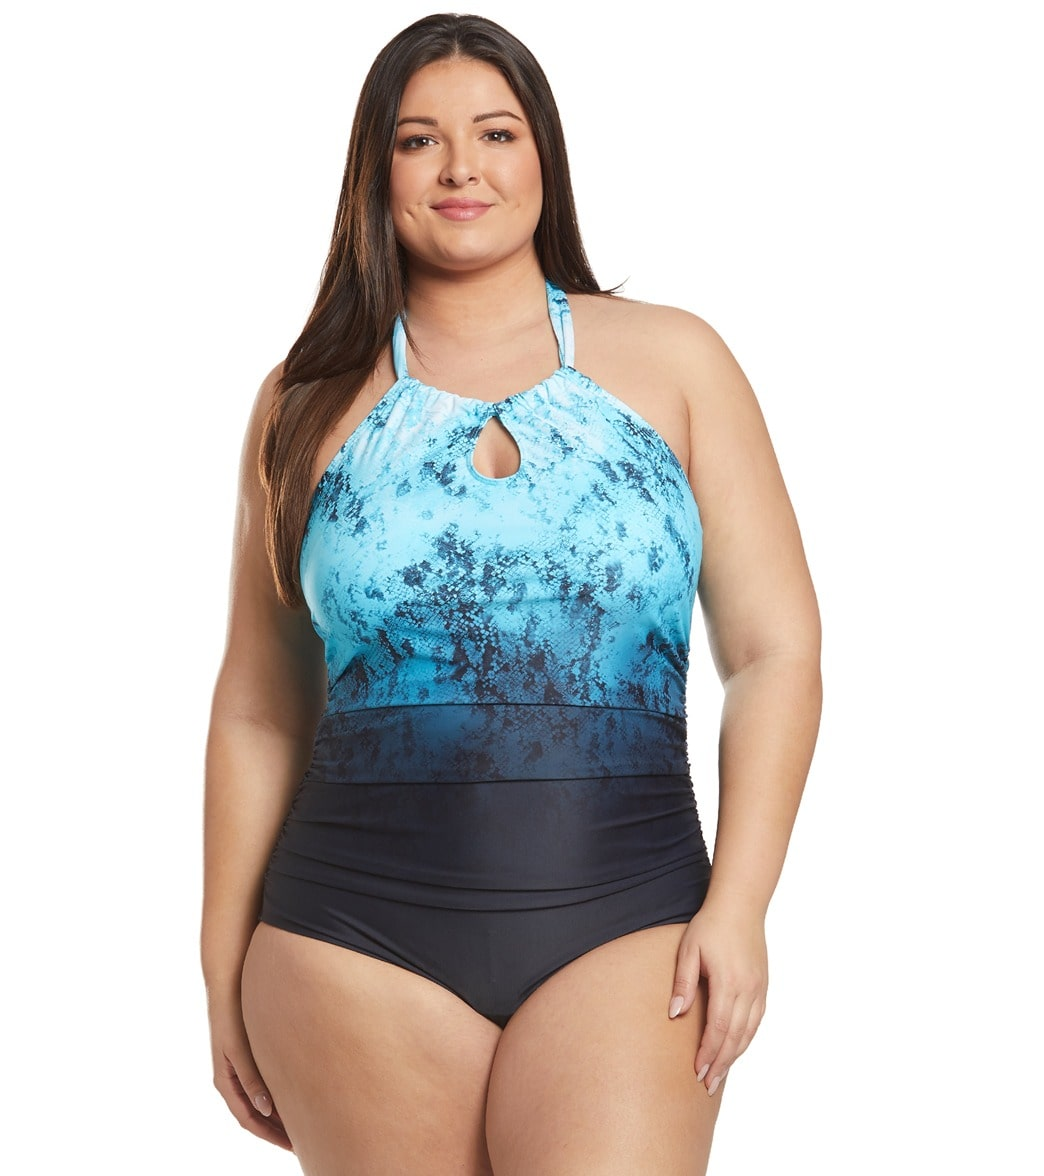 cced8585cab Speedo Plus Size Print Halter One Piece Swimsuit at SwimOutlet.com - Free  Shipping